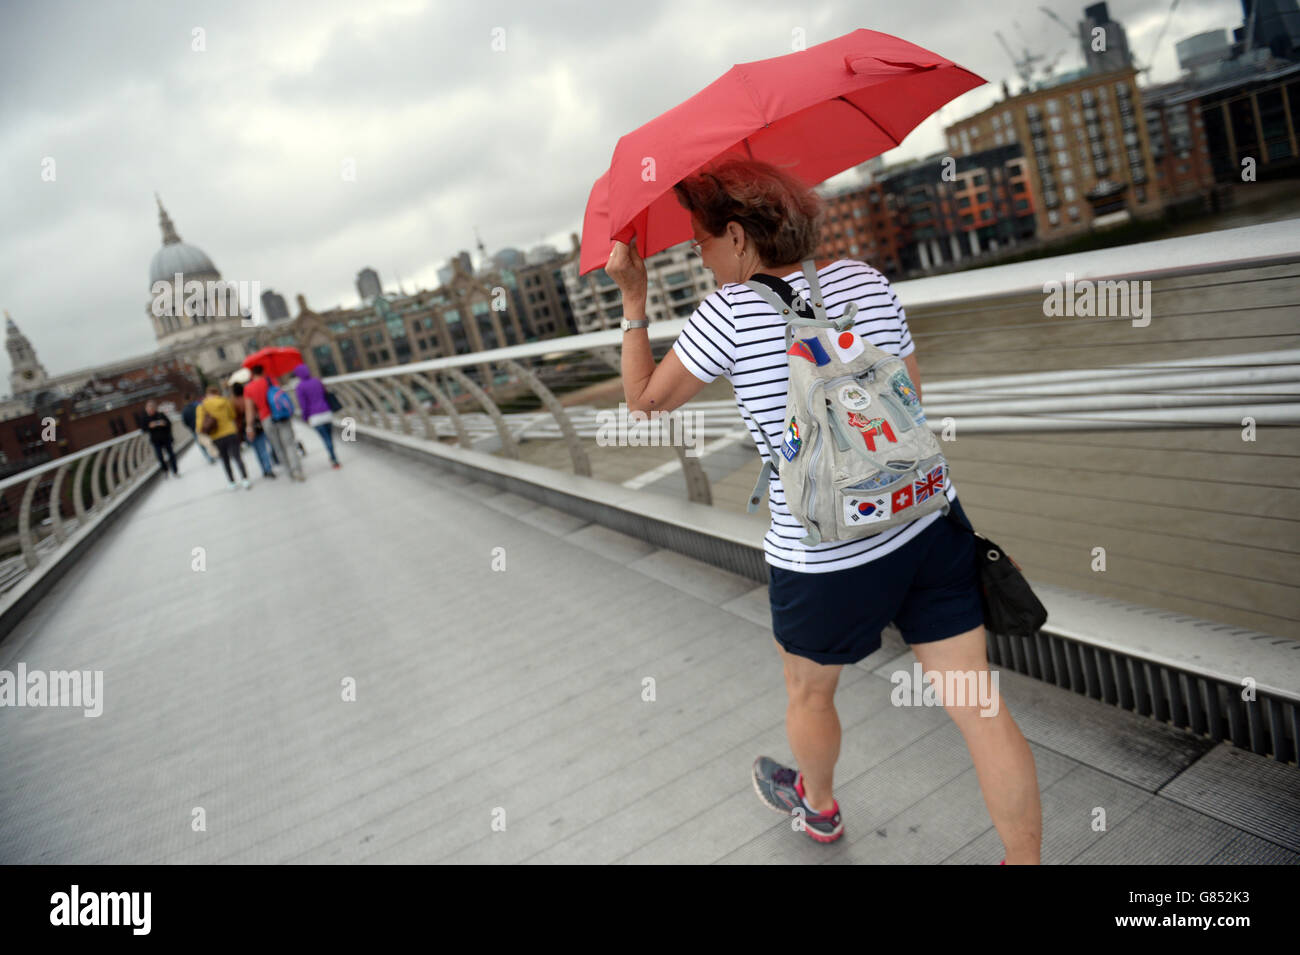 Summer weather July 15th 2015 Stock Photo